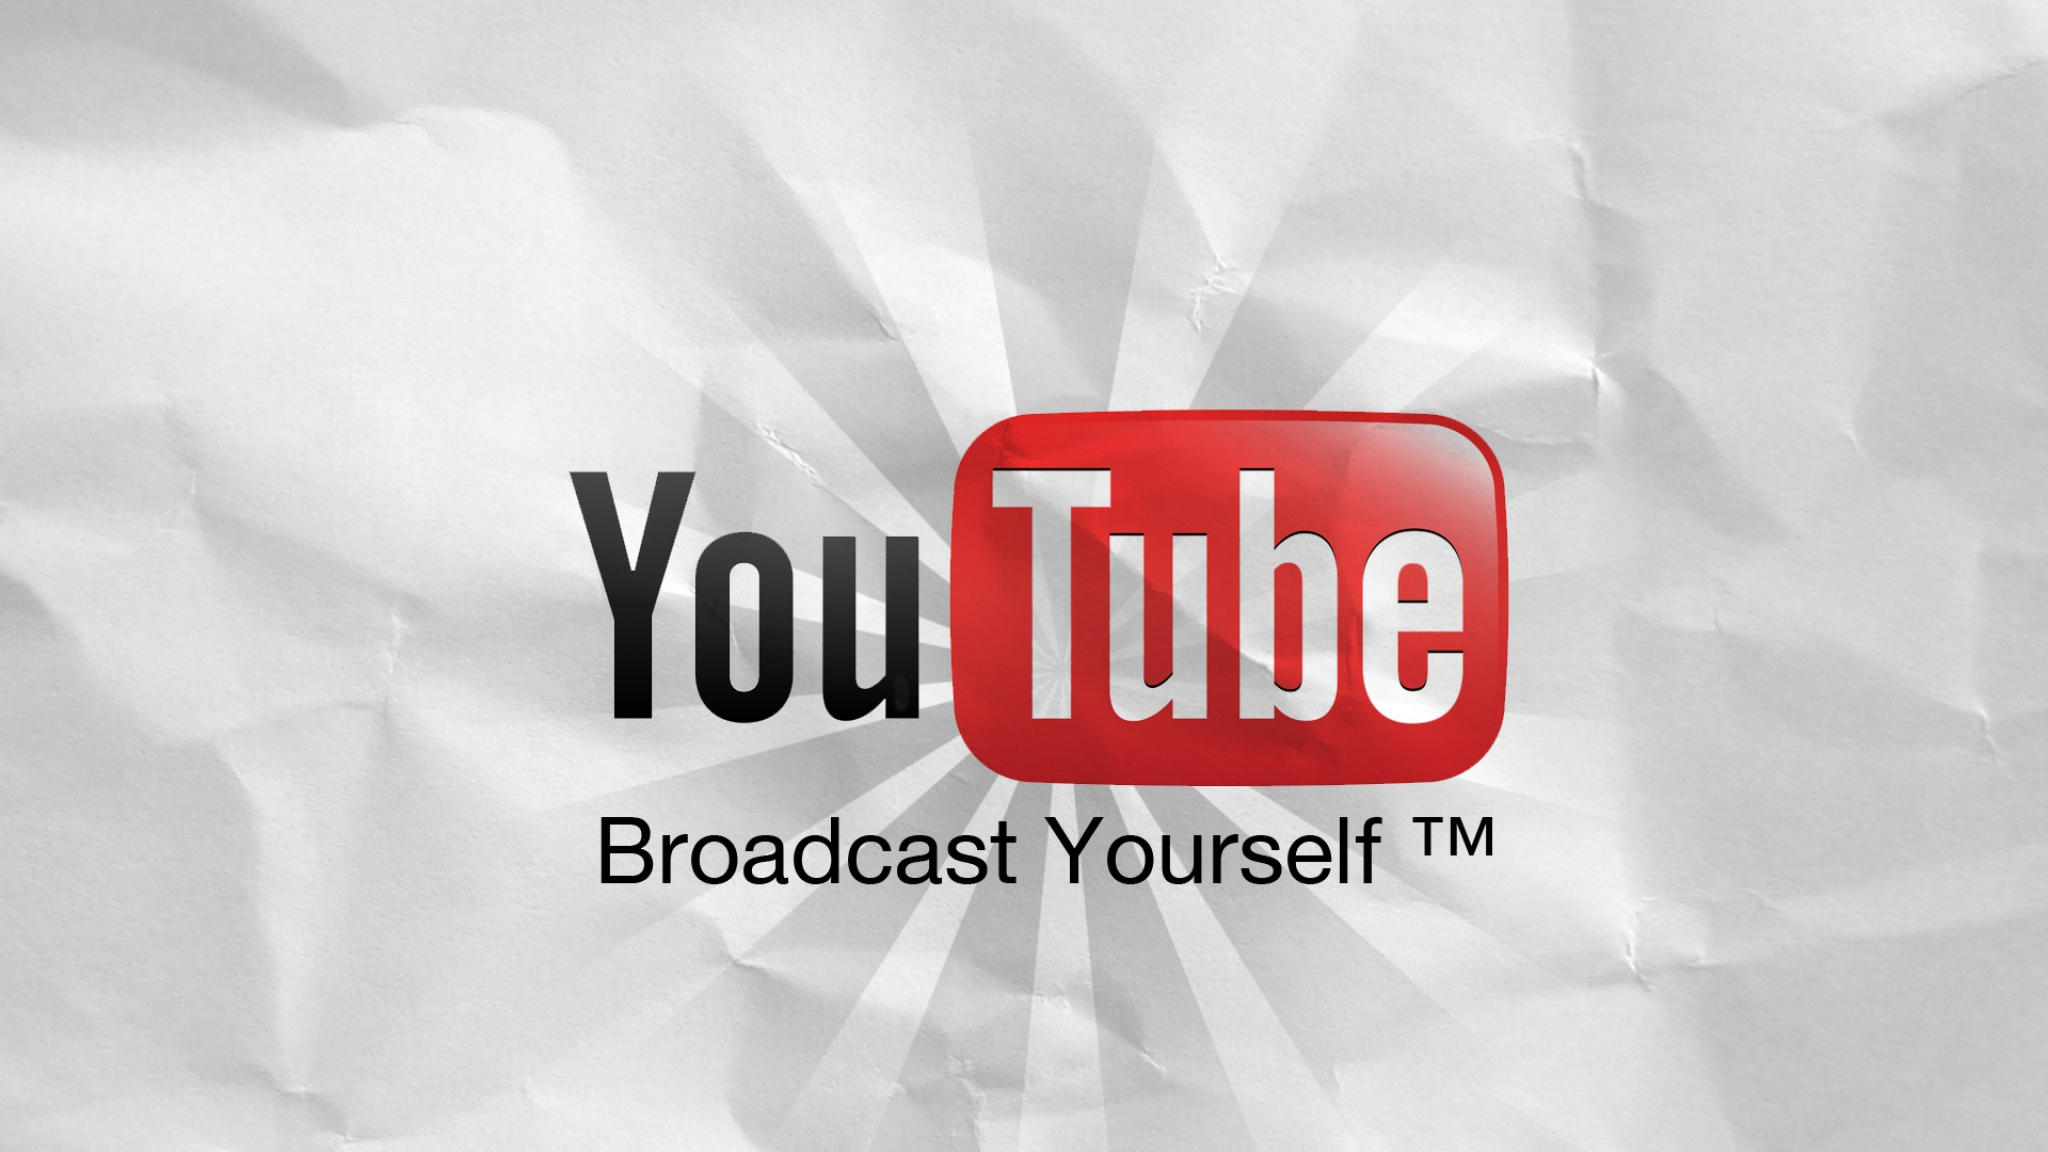 Wallpaper 2048x1152 youtube logo information portal HD HD Background 2048x1152